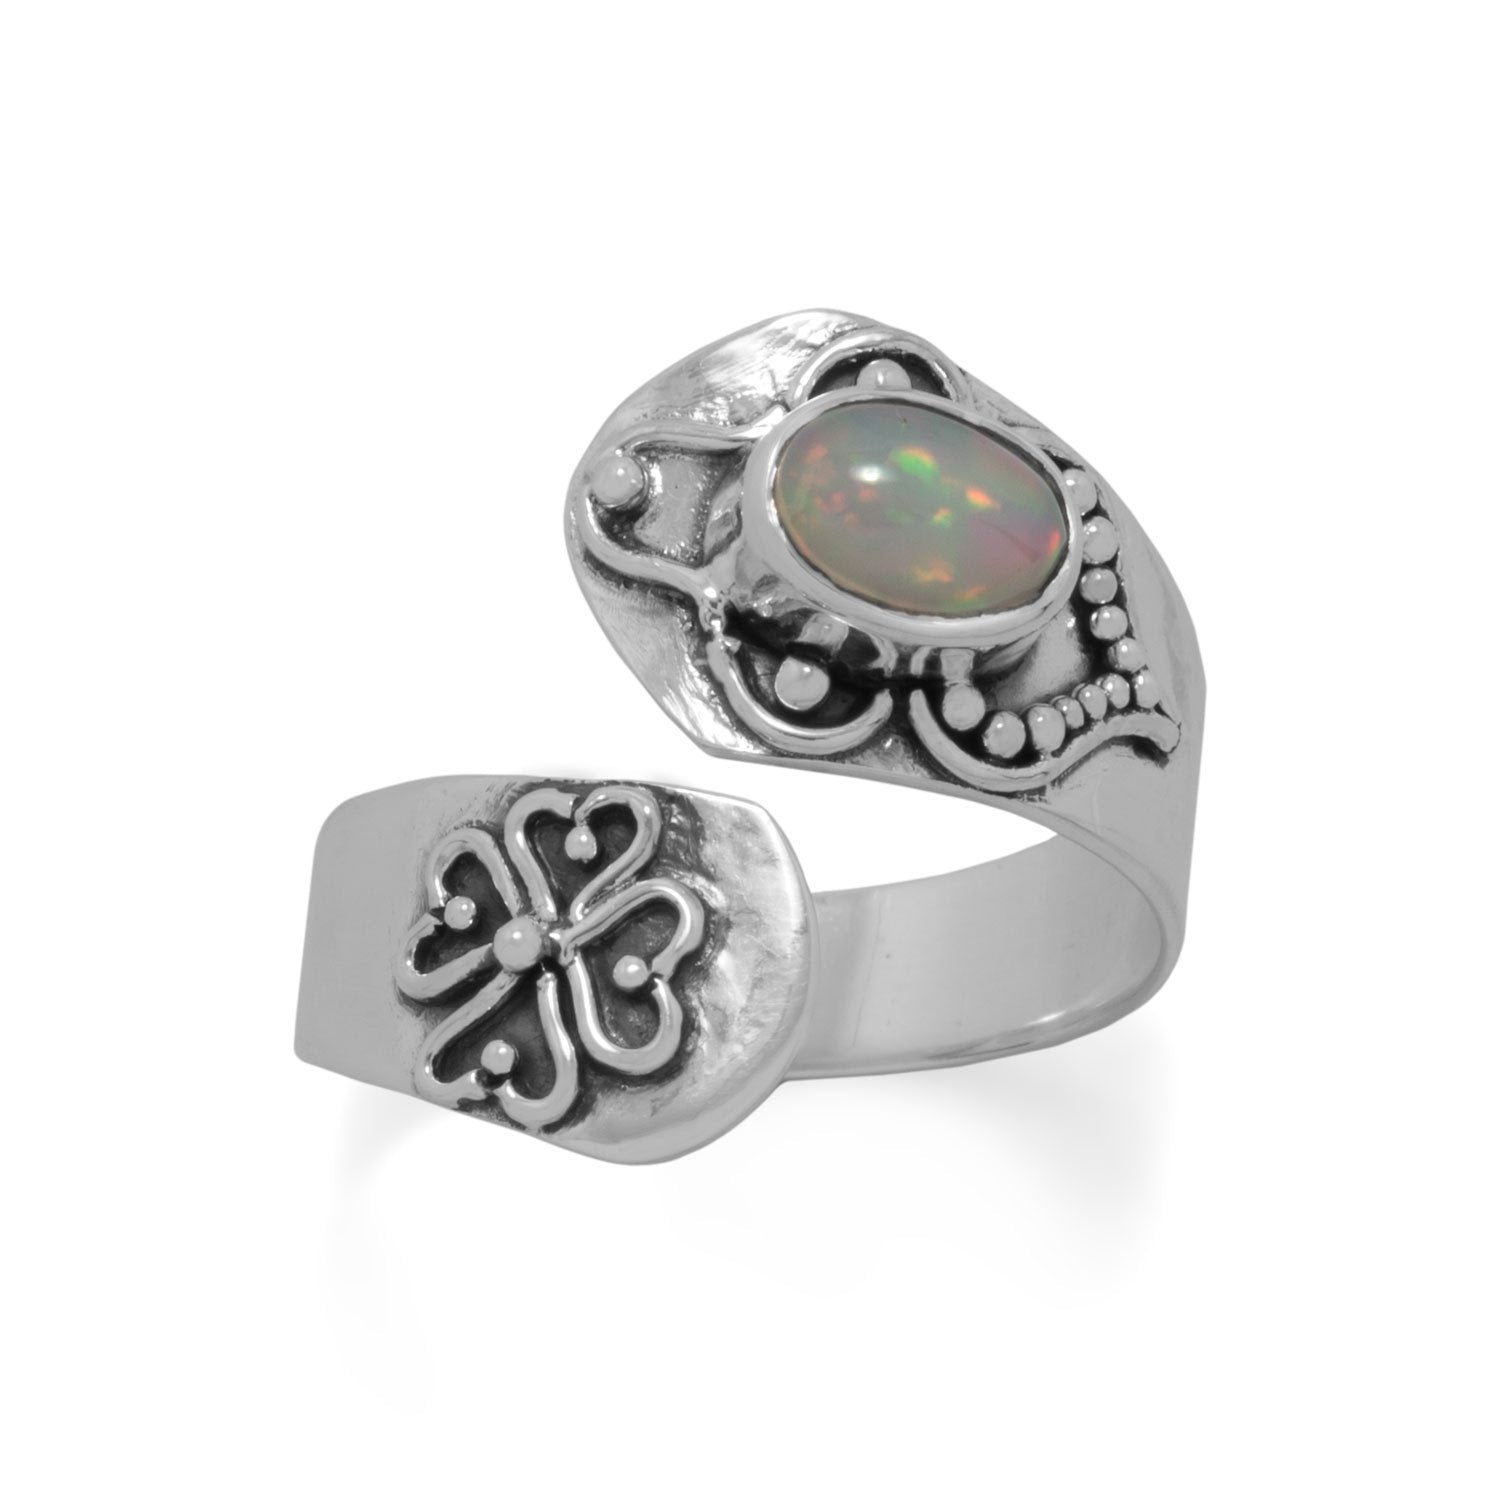 Bali Oxidized Ethiopian Opal Wrap Ring